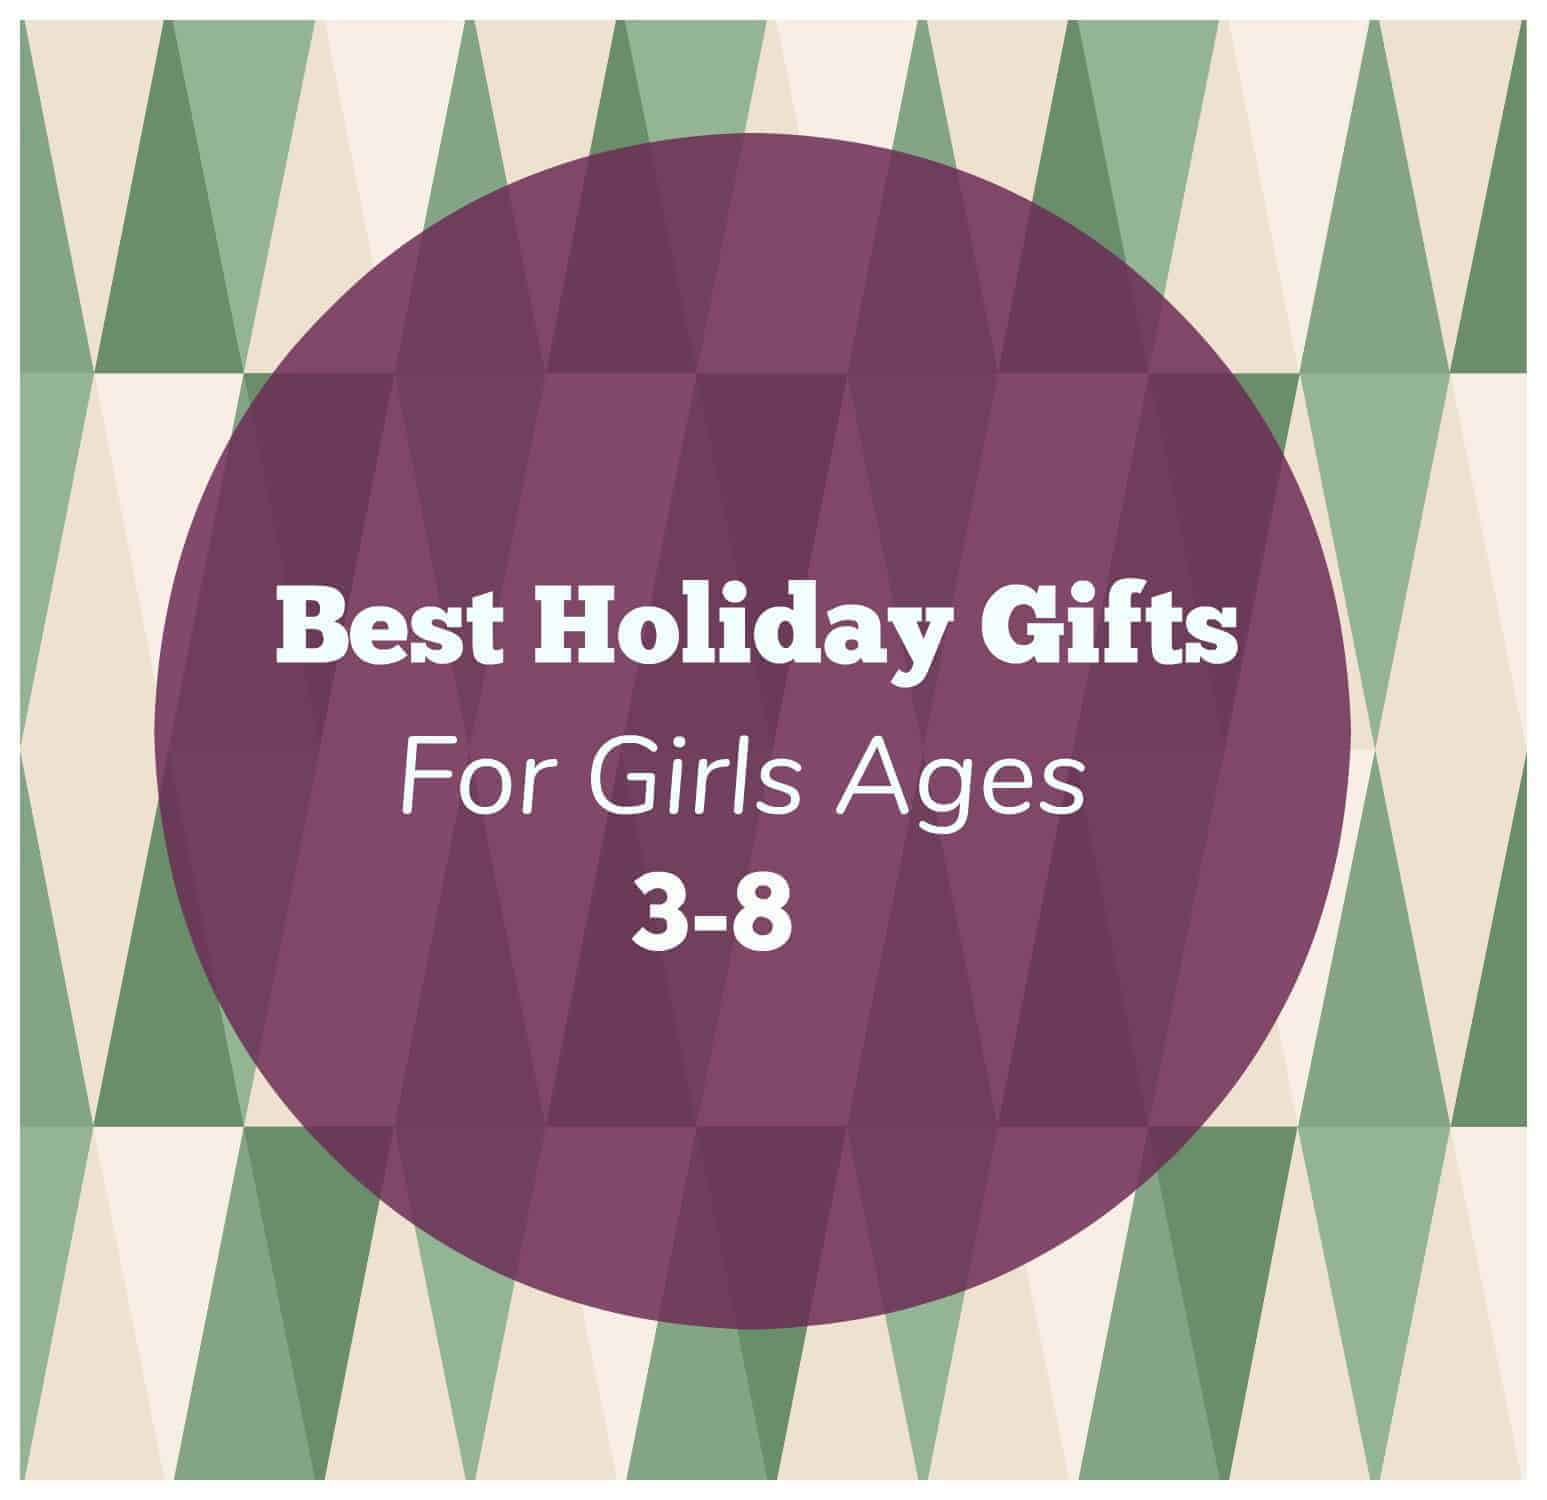 Best Holiday Gifts for Girls Ages 3-8